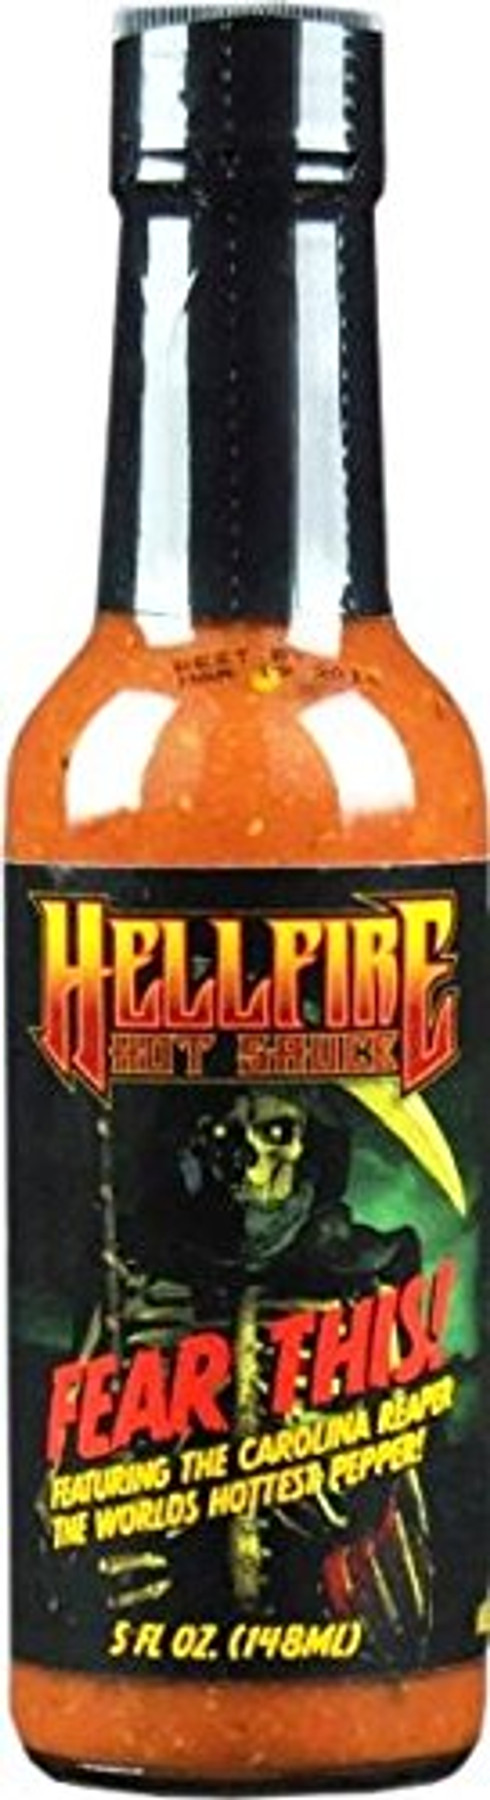 Hellfire's Fear This! Hot Sauce